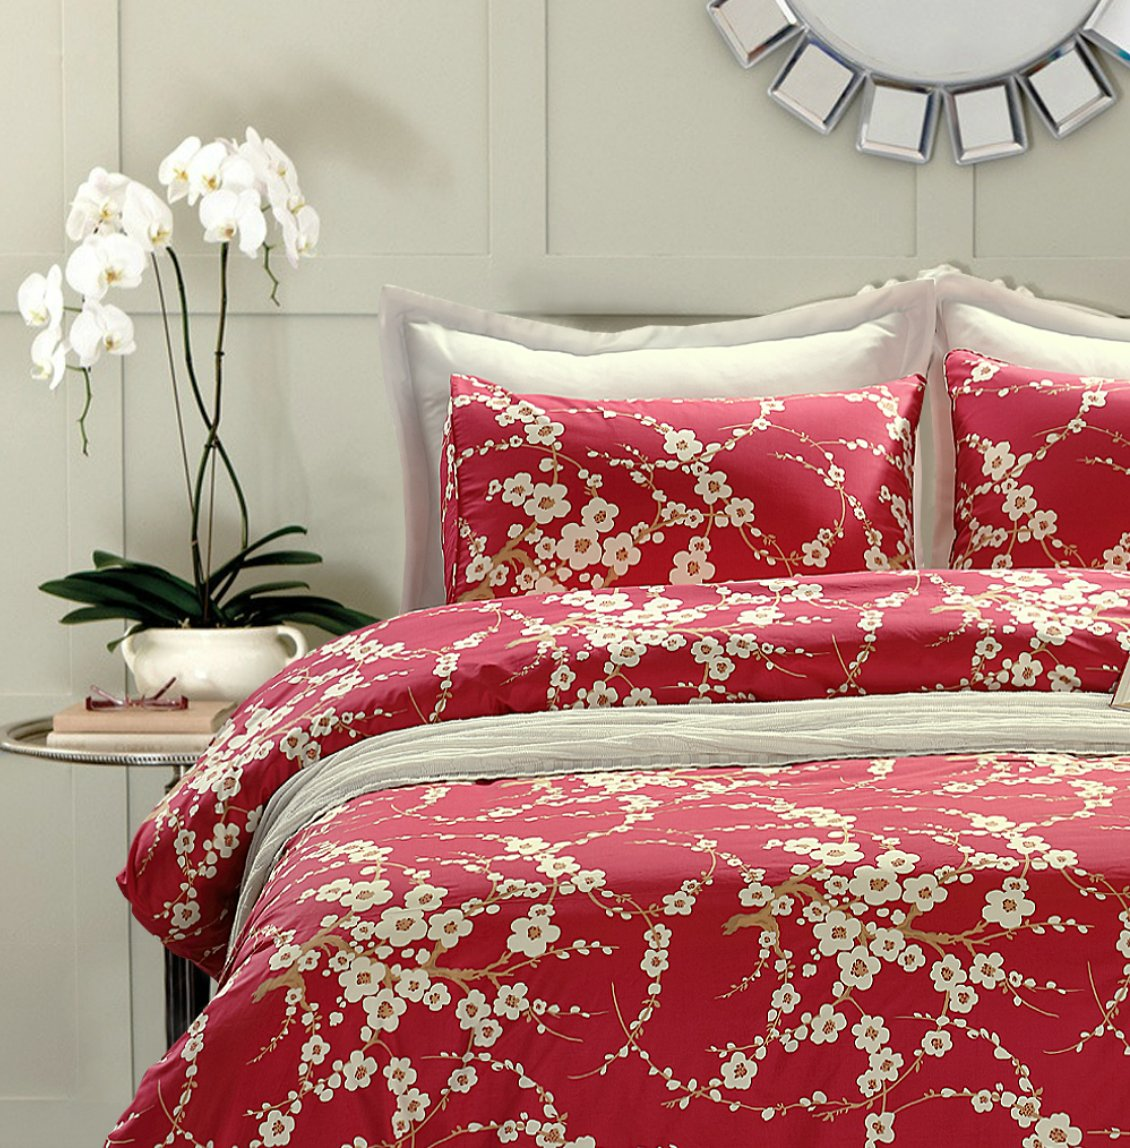 Oriental Comforters Bedspread Sets - Ease Bedding with Style